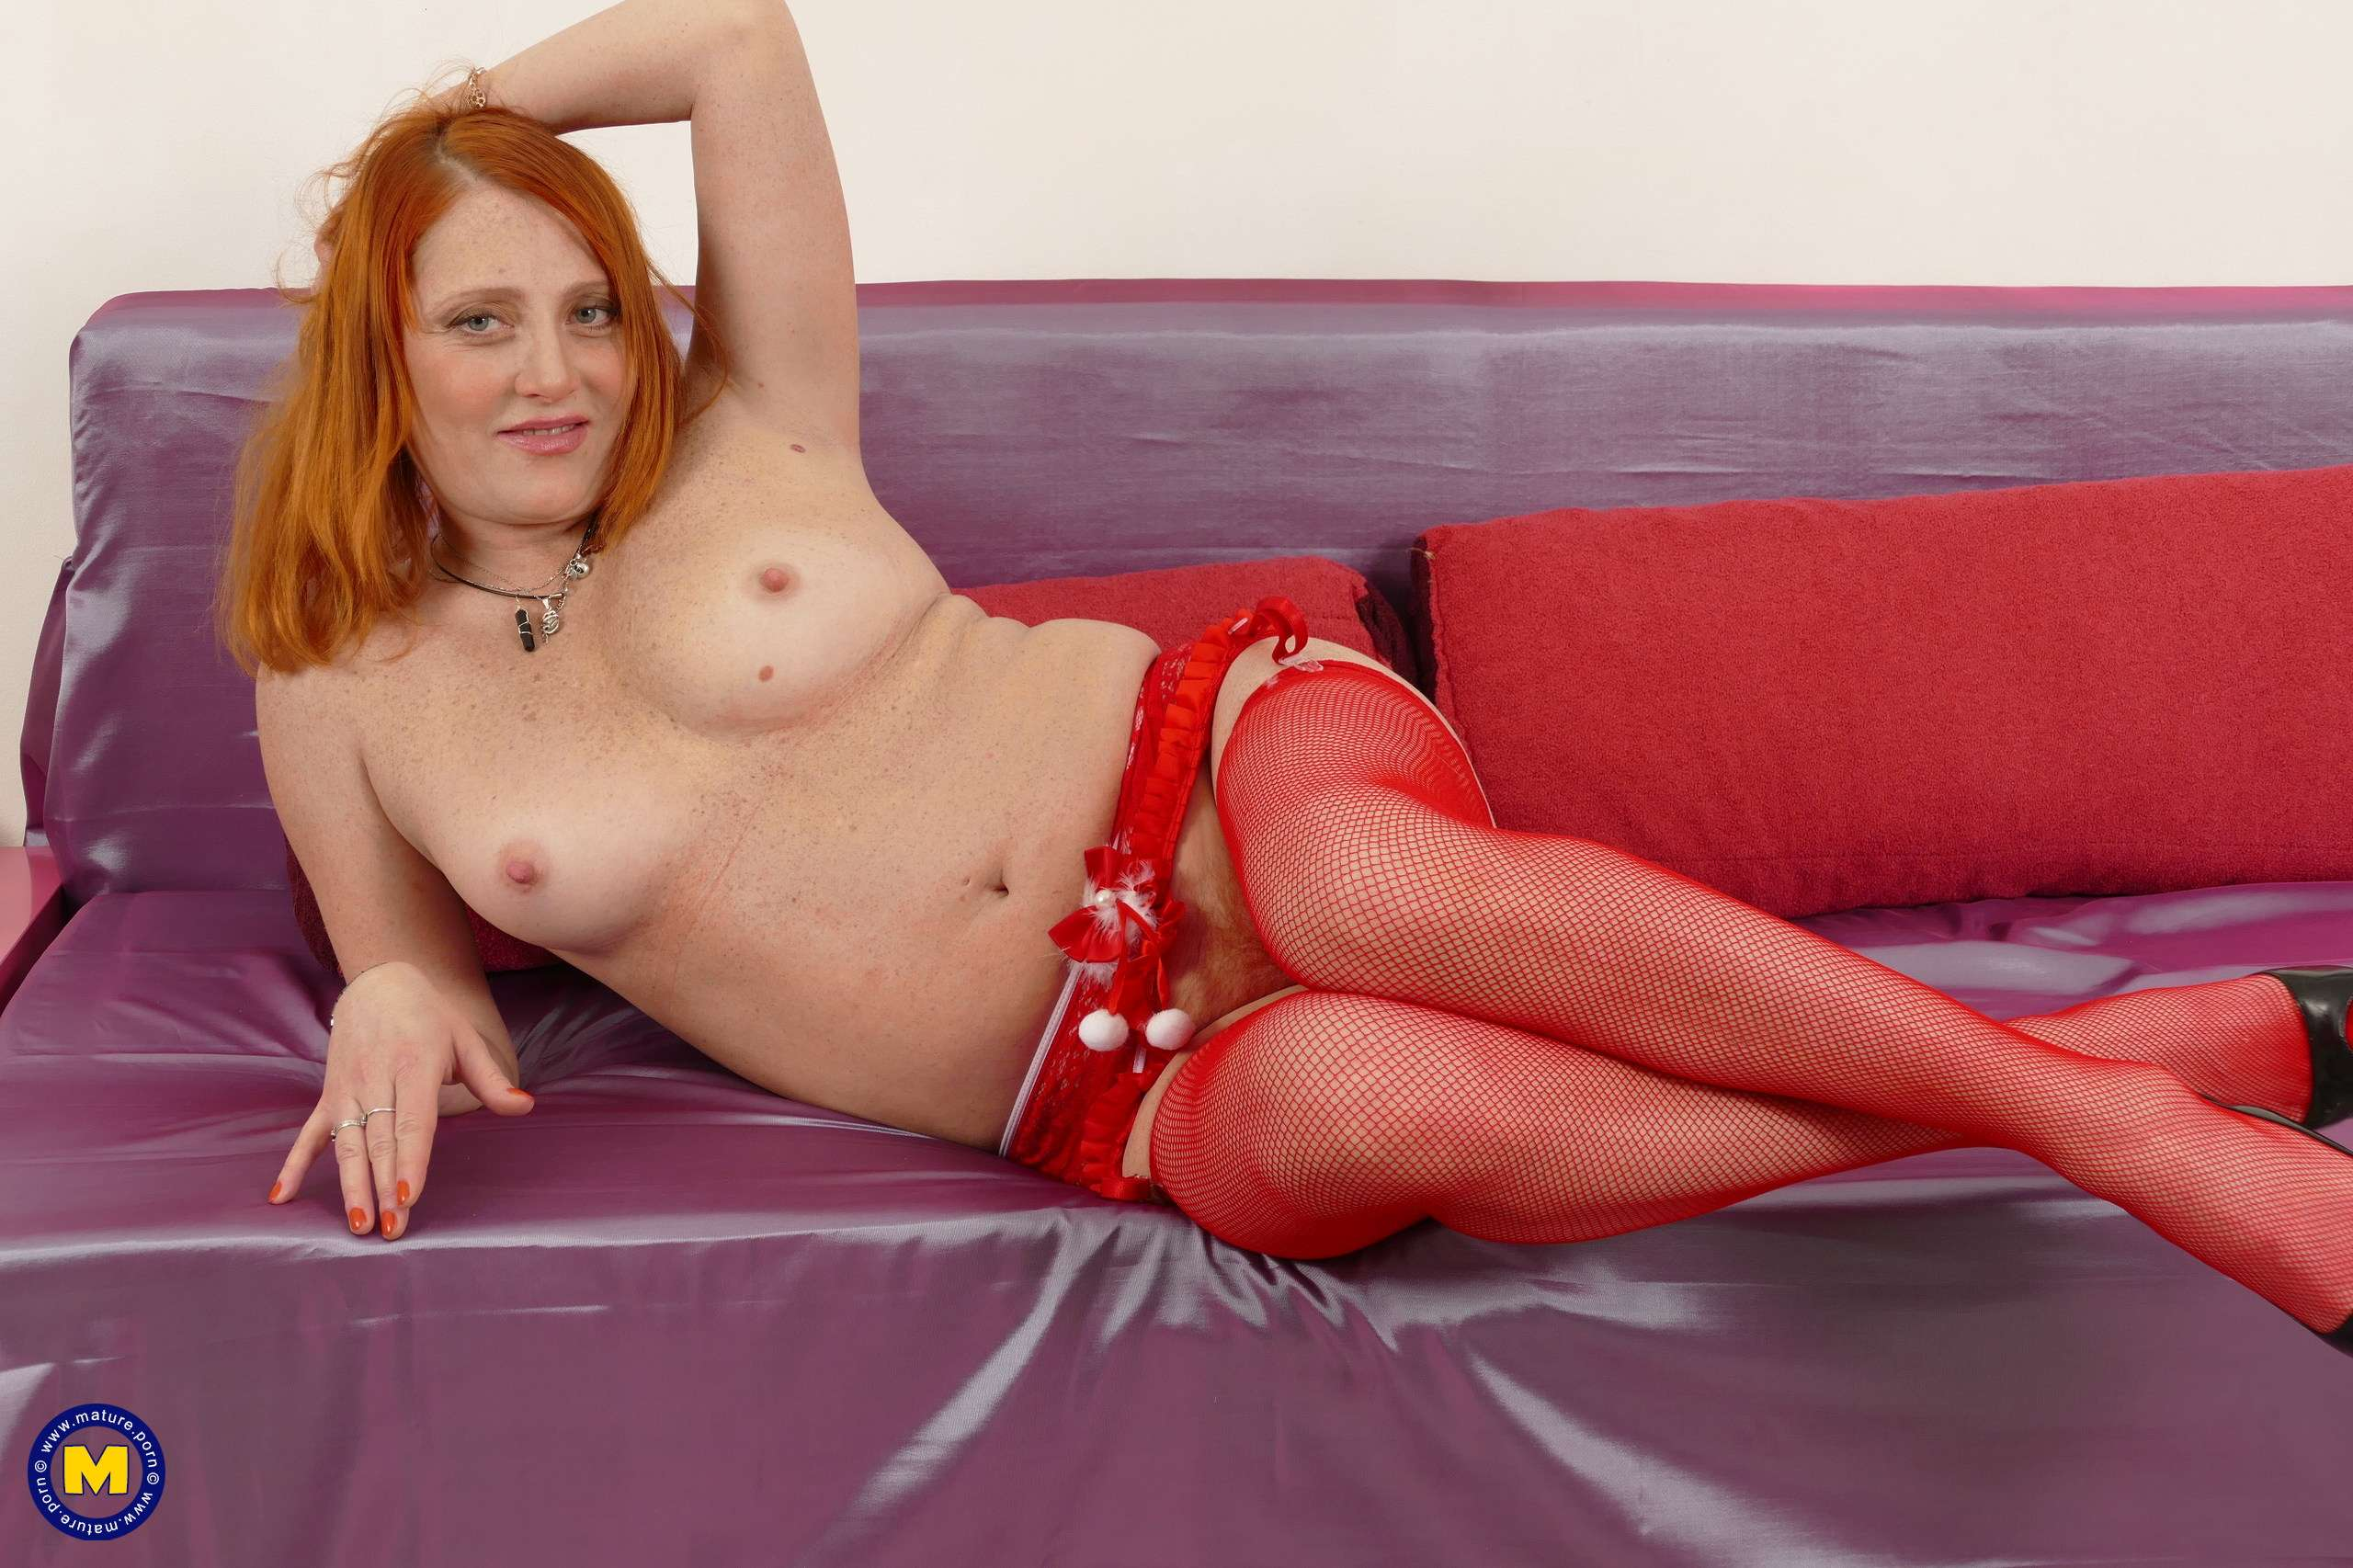 Naughty red housewife Viola playing with herself